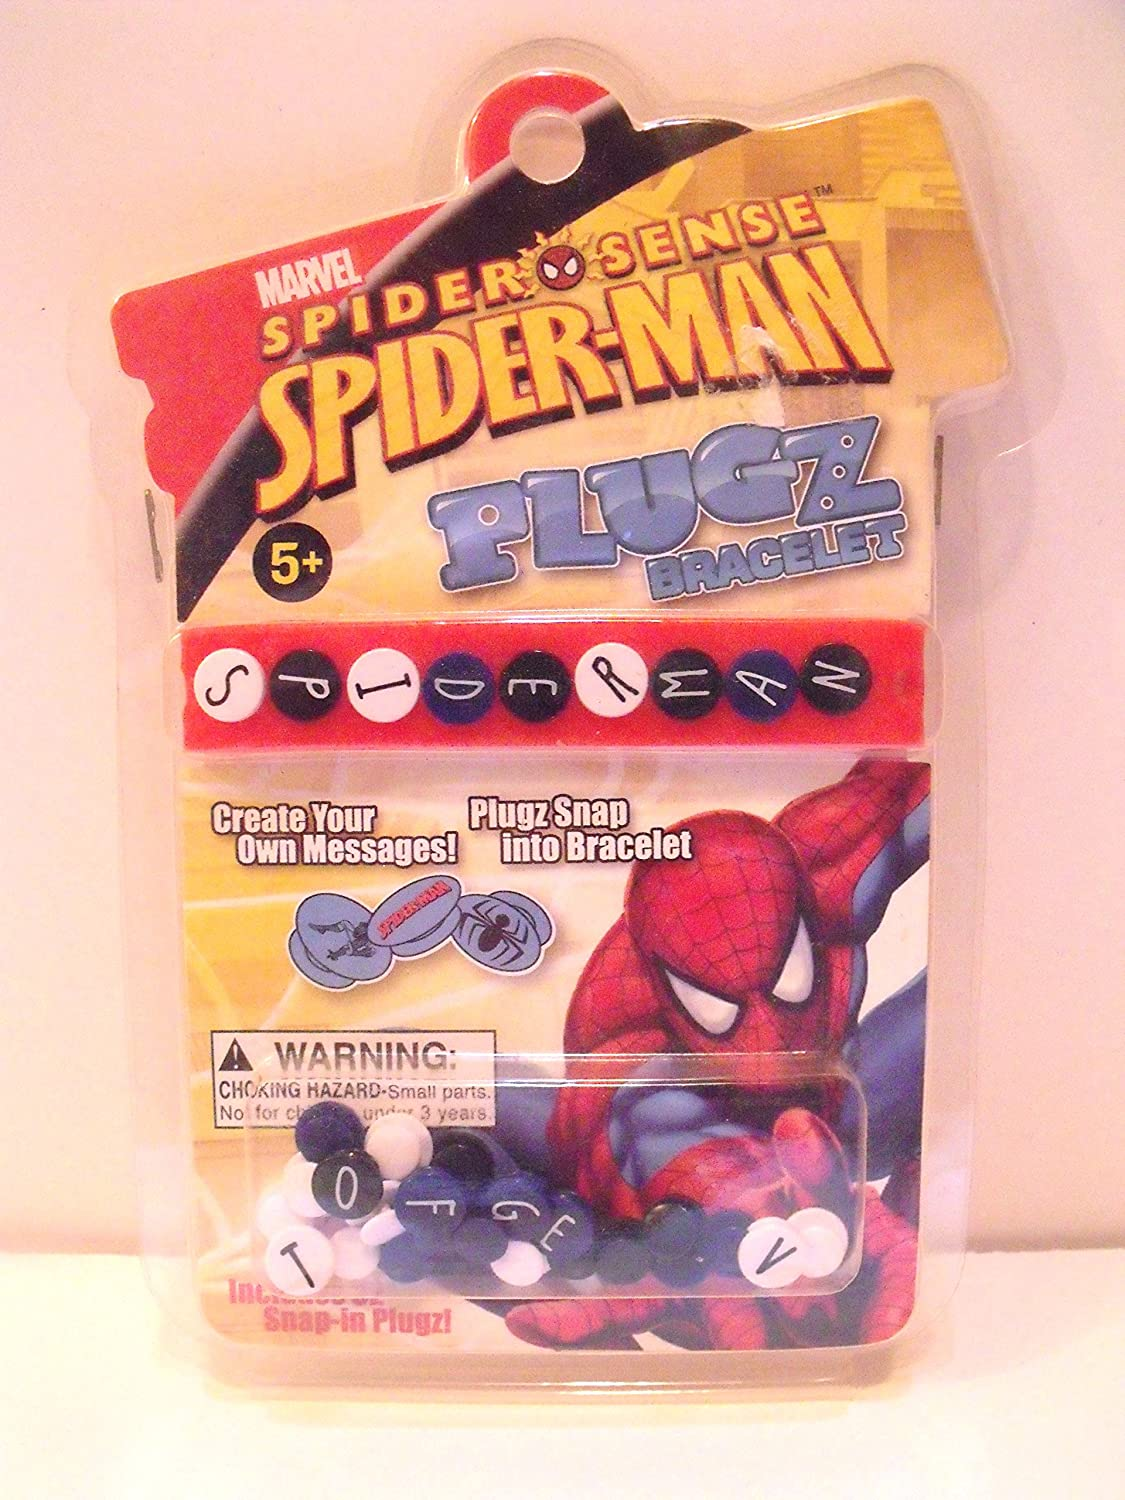 Spiderman Plugz Snap Plastic Bracelet with Letters by Forever Collectibles